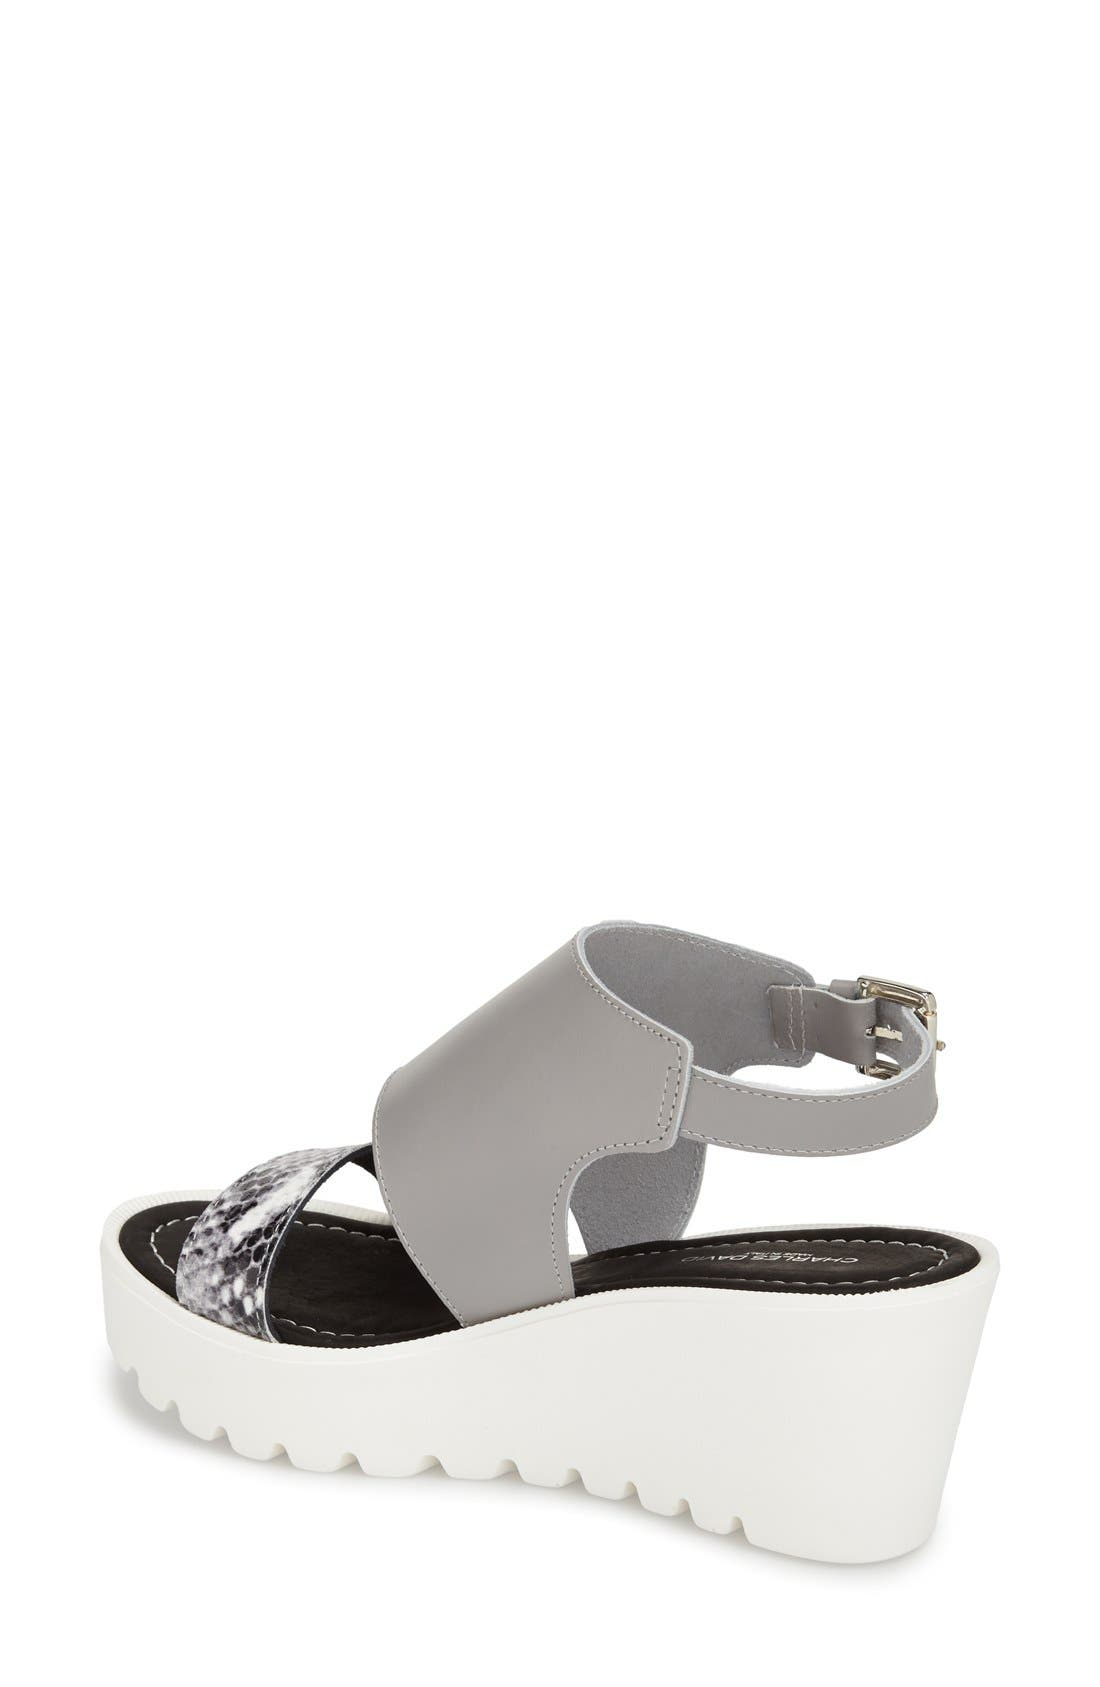 Alternate Image 2  - Charles David 'Apria' Wedge Sandal (Women)